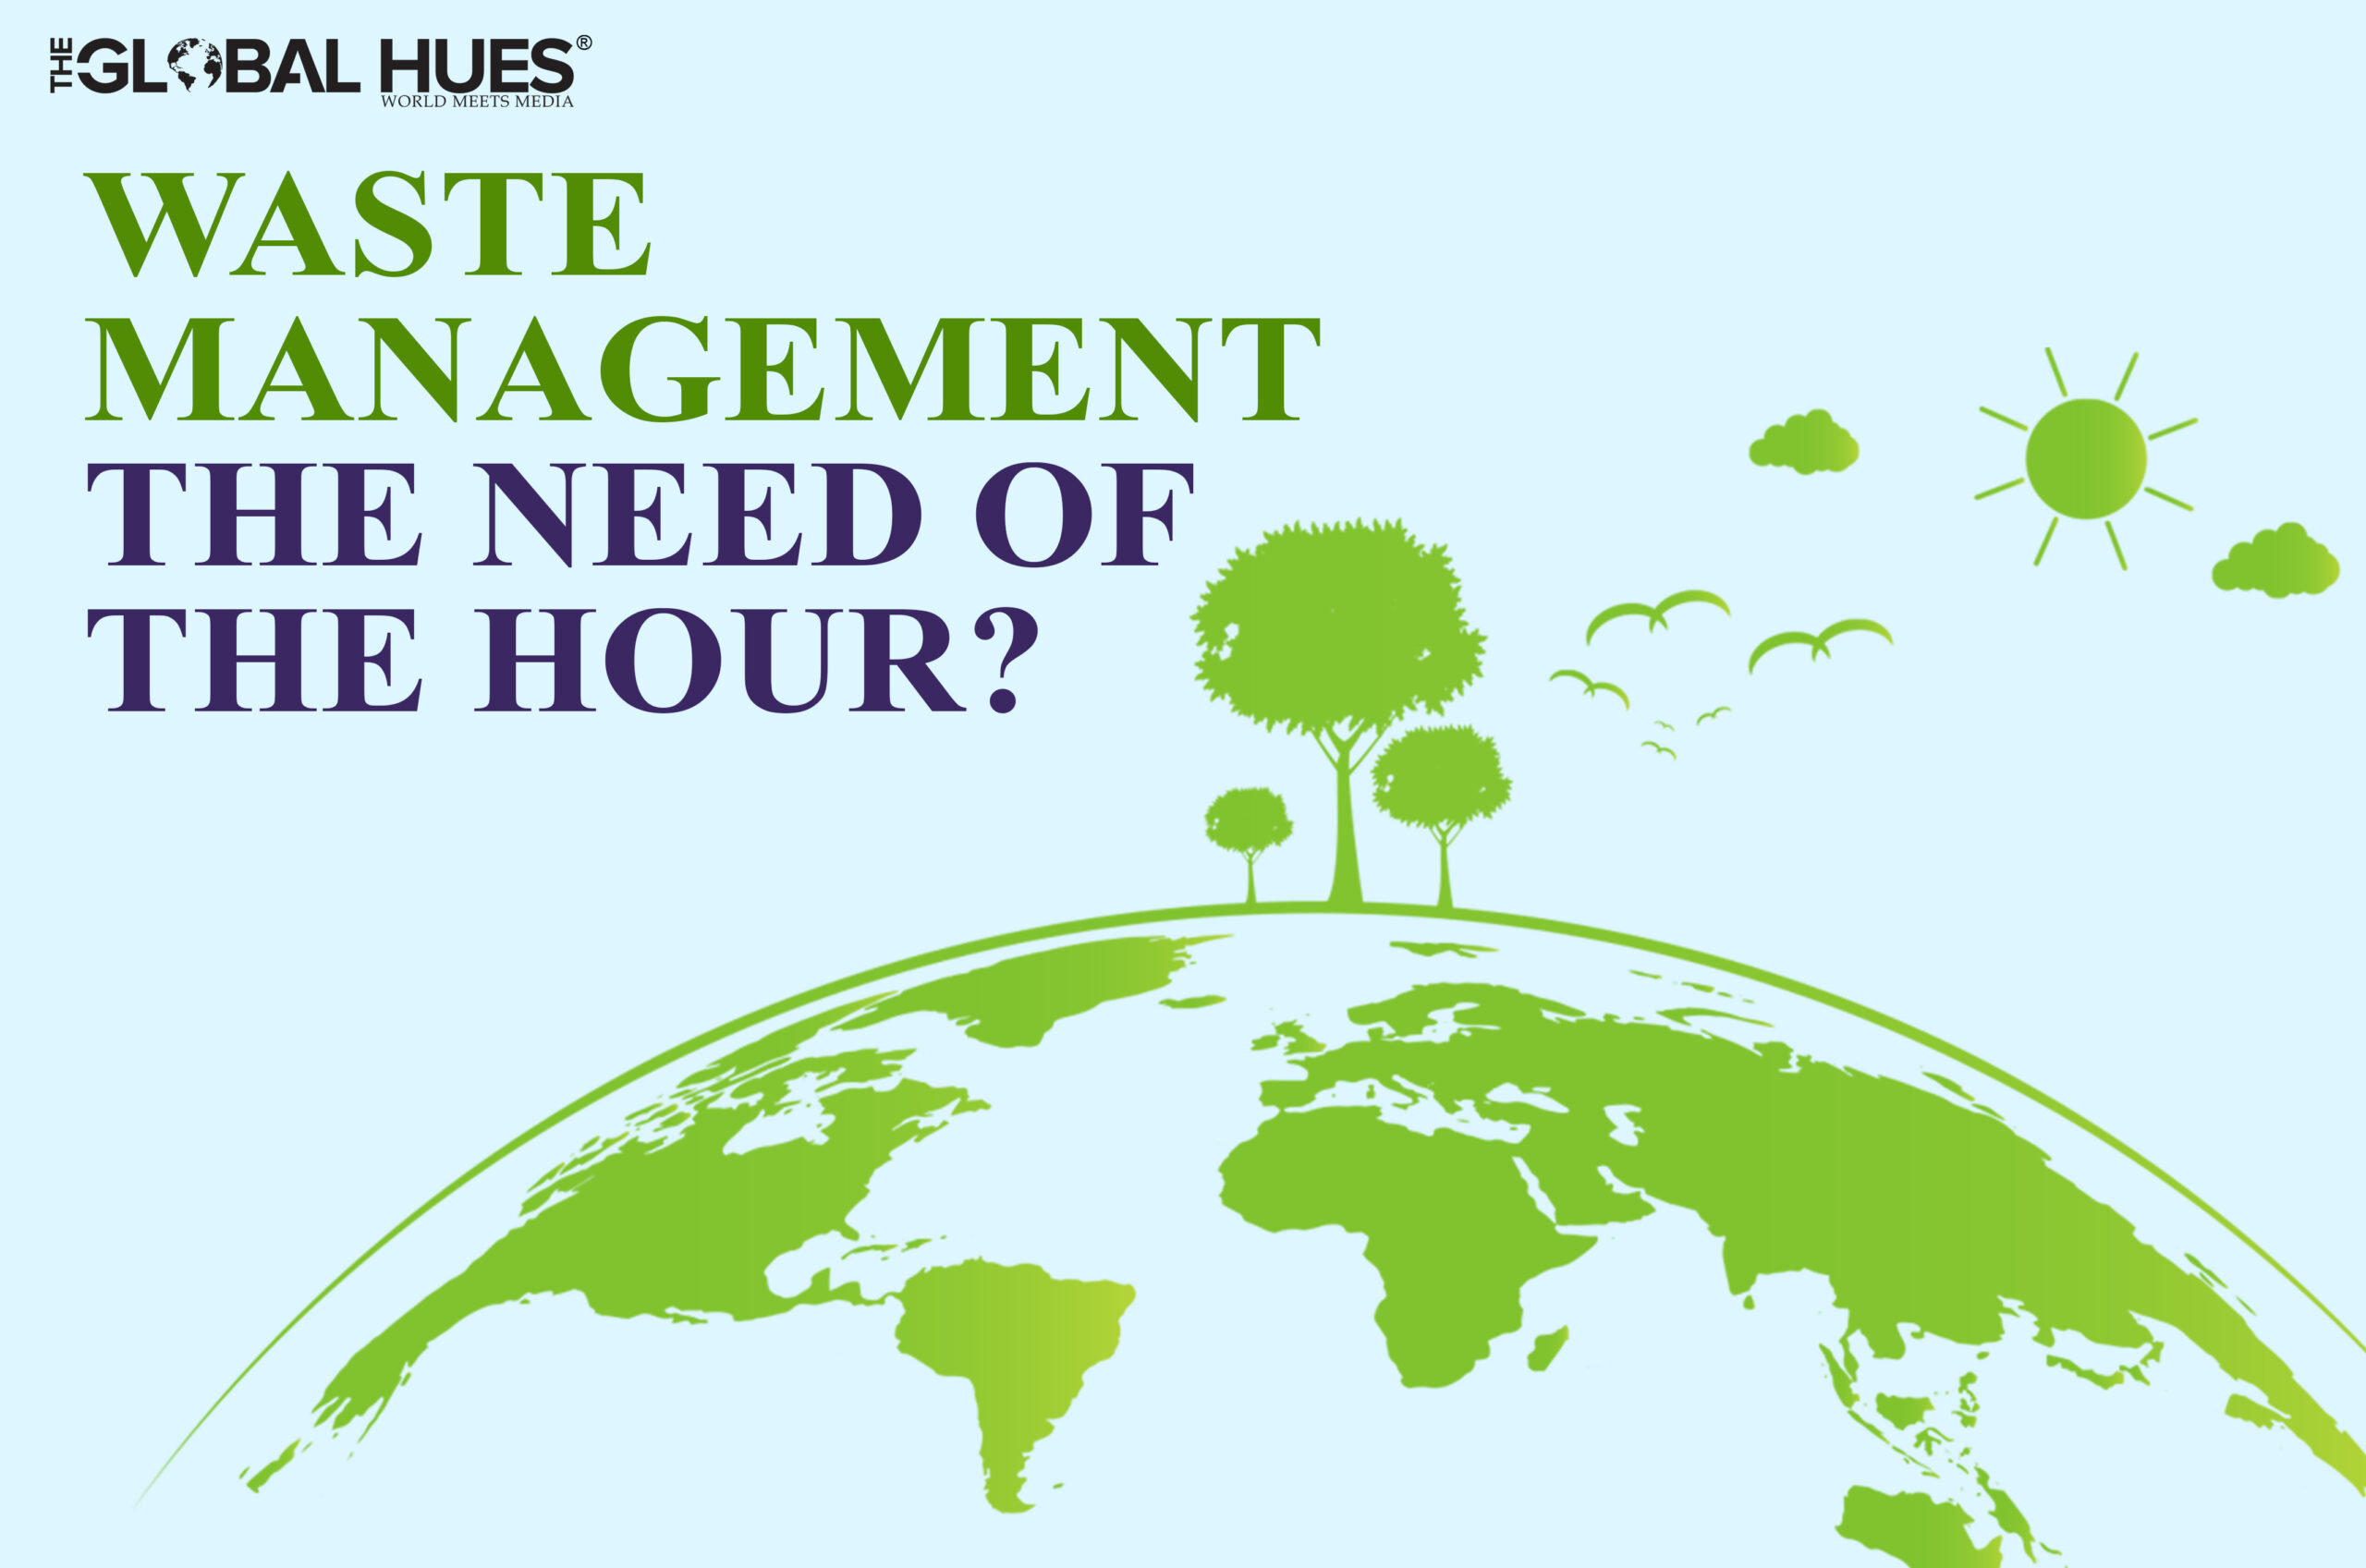 Waste Management need of the hour